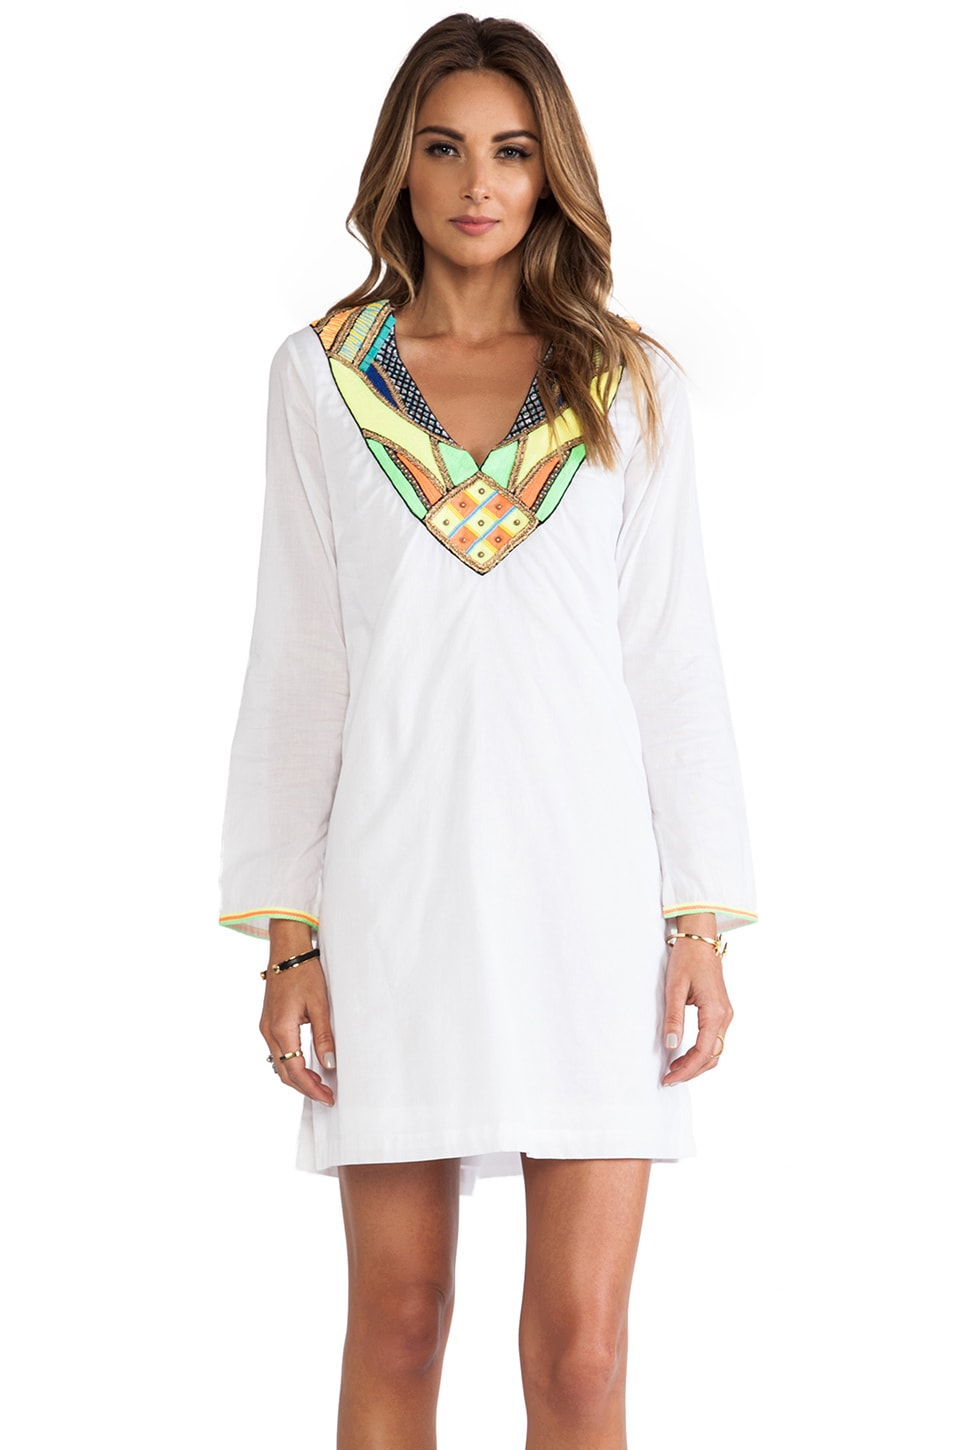 Pia Pauro Discovery Pool Neon Afrique Caftan in White